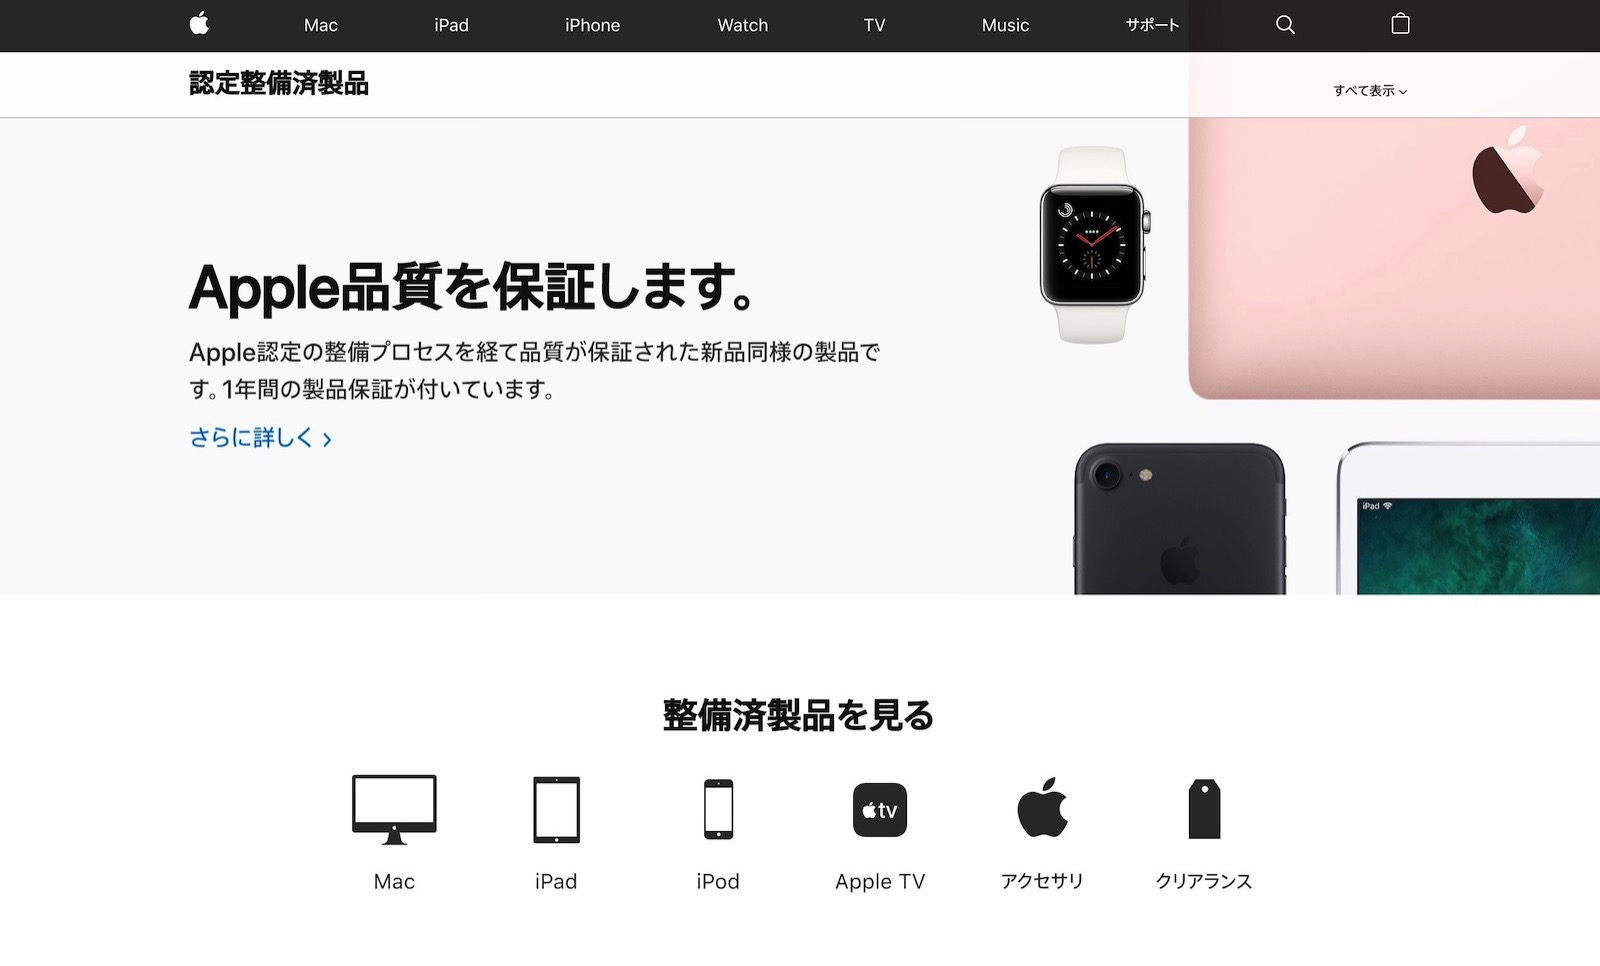 Apple Refurbished Site